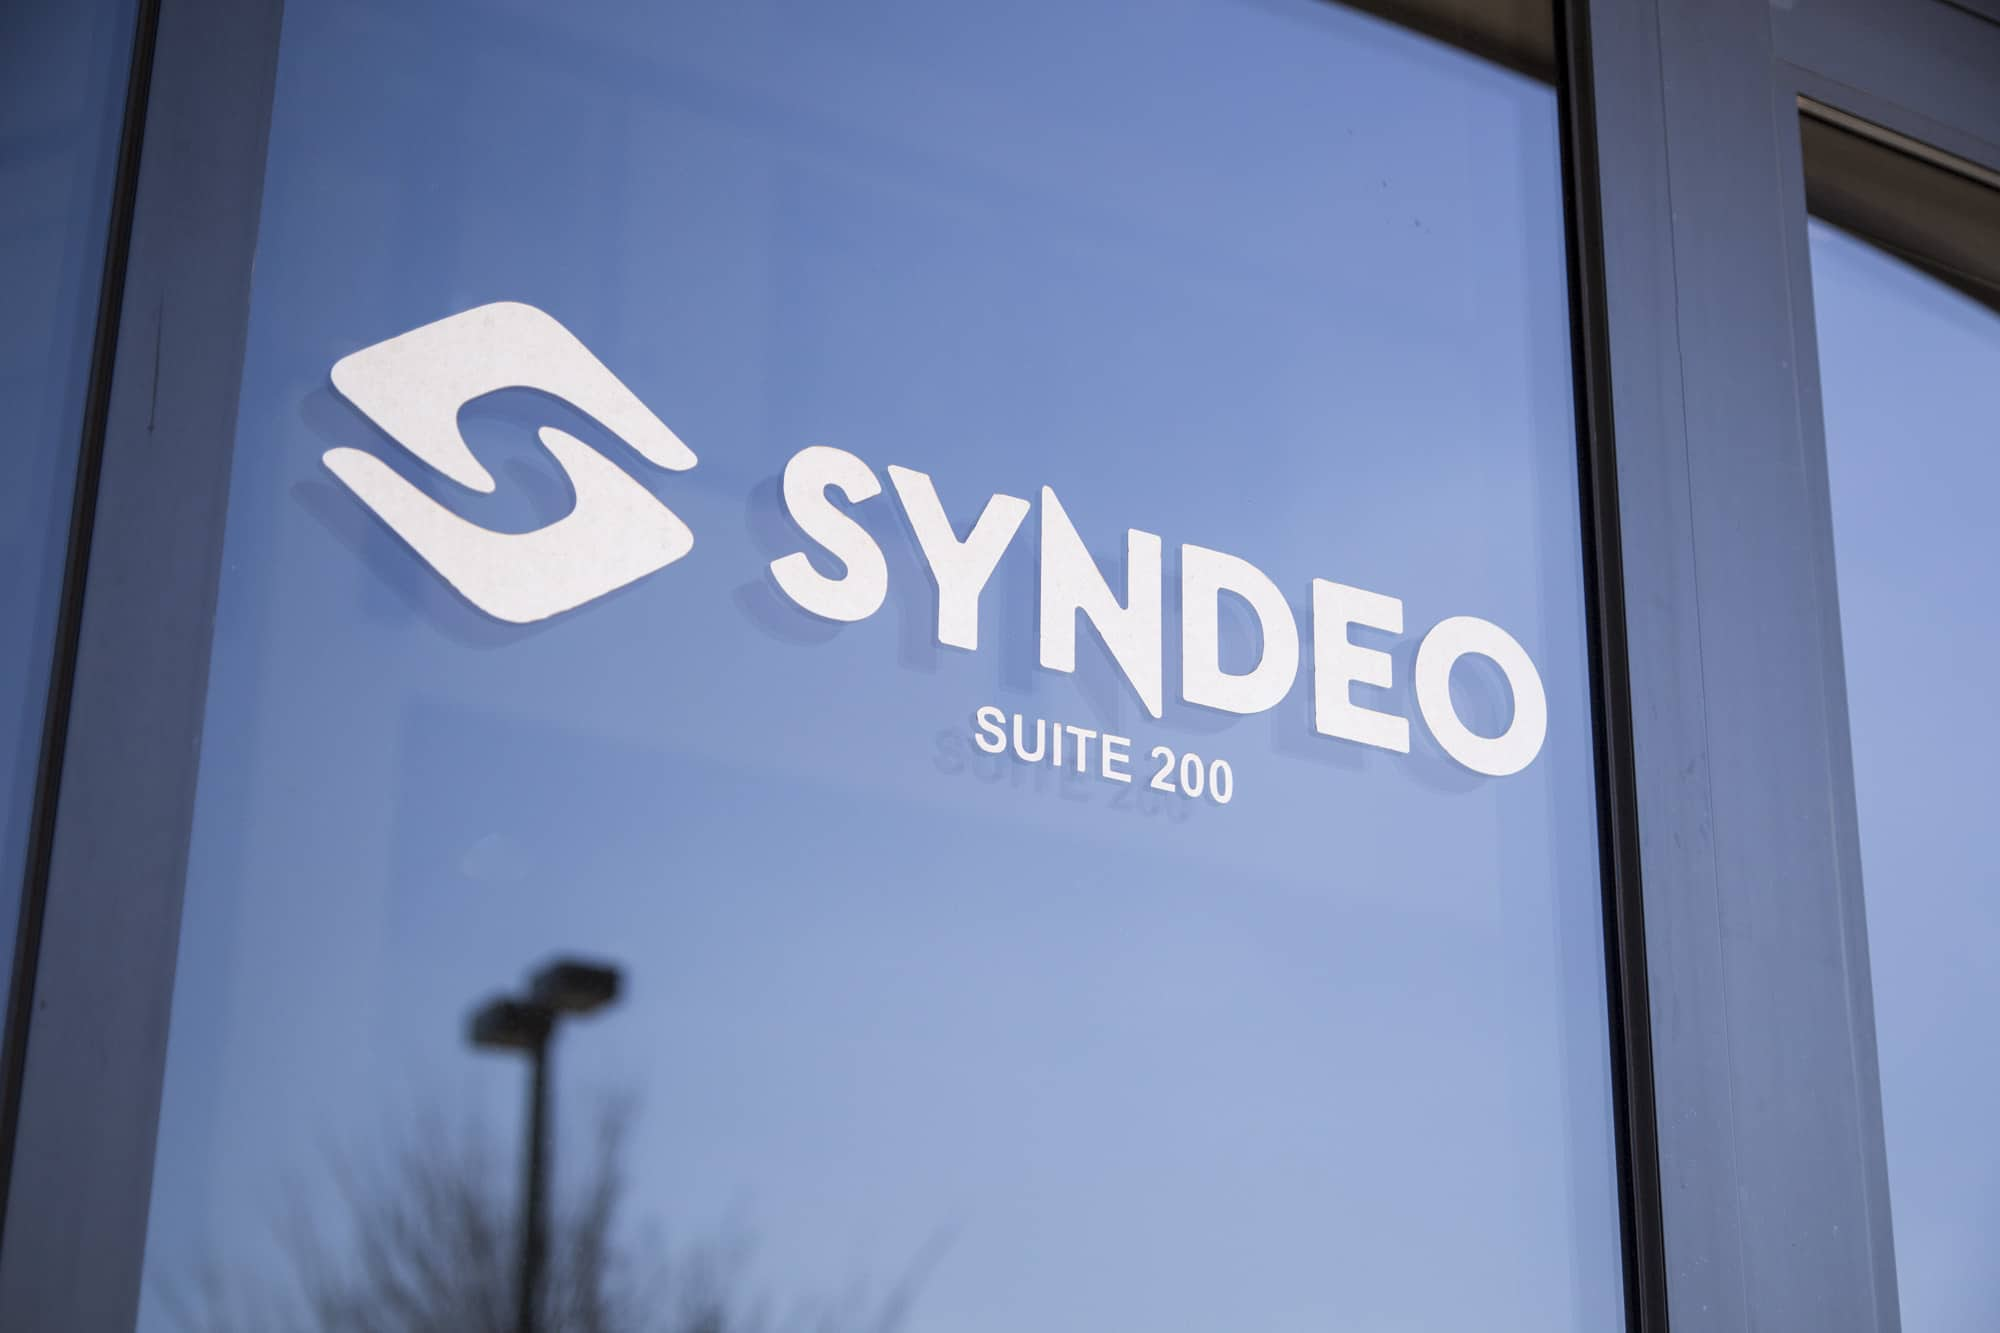 Syndeo's Sowder featured on HR industry leaders list